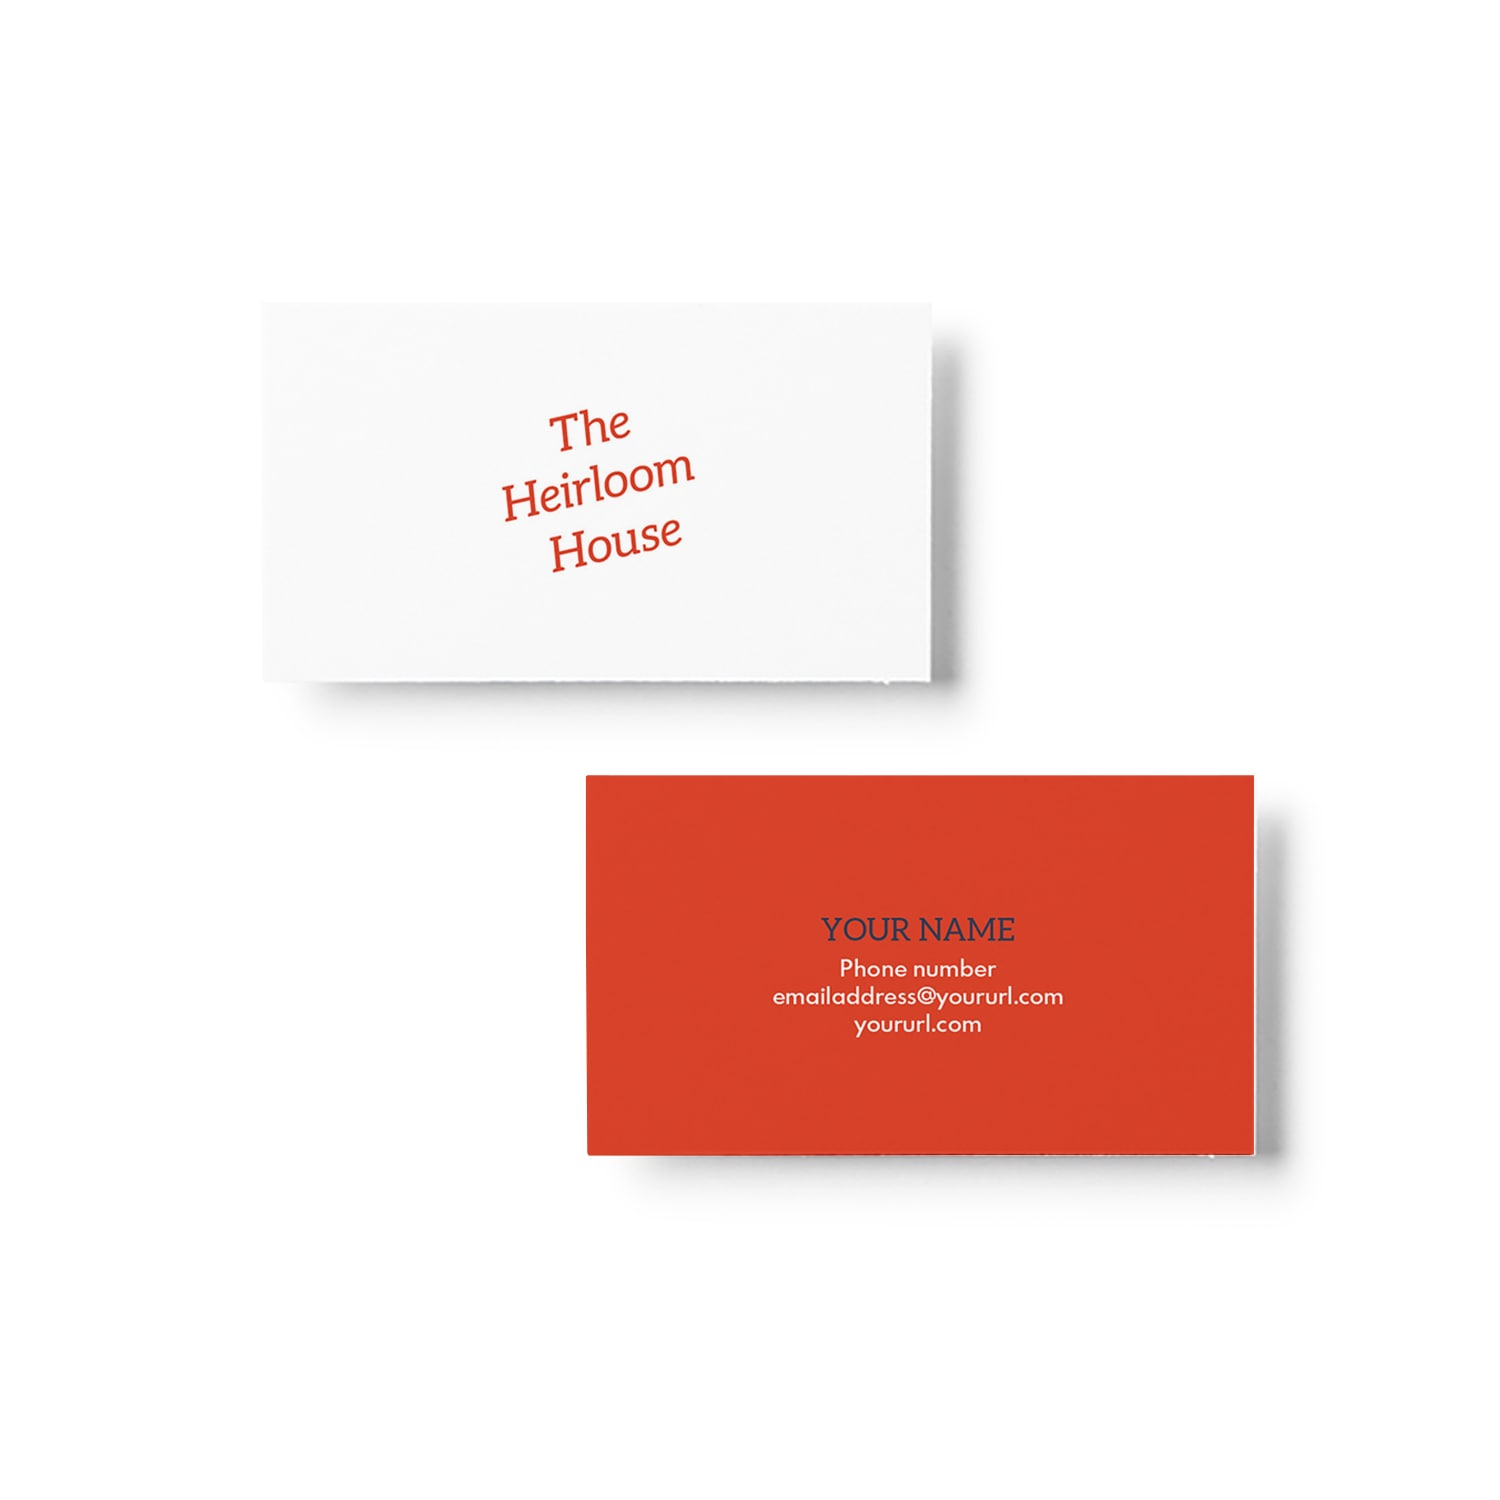 The Heirloom House Business Card Design_Copyright Tiny Crowd